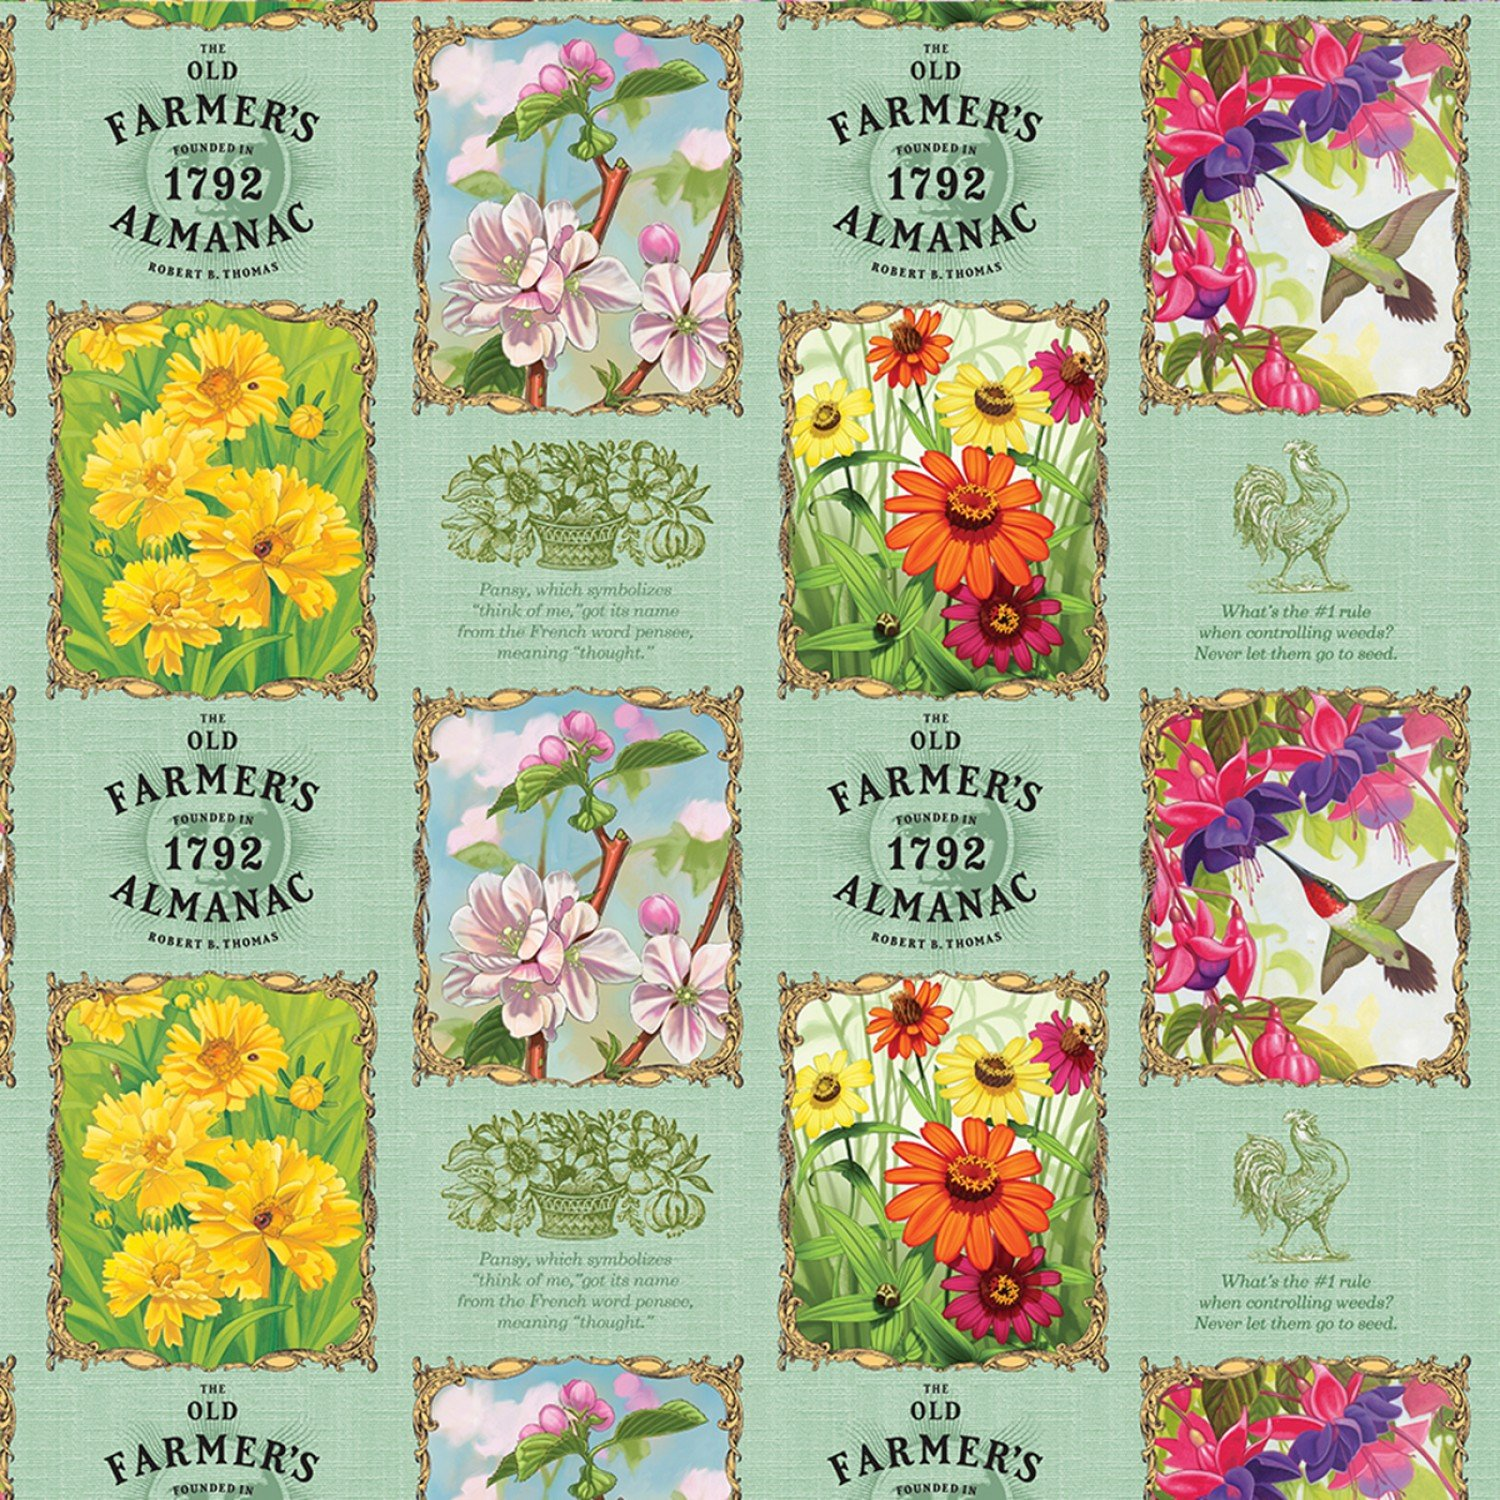 SF-Old Farmers Almanac Floral 10326-OFA Floral Patch